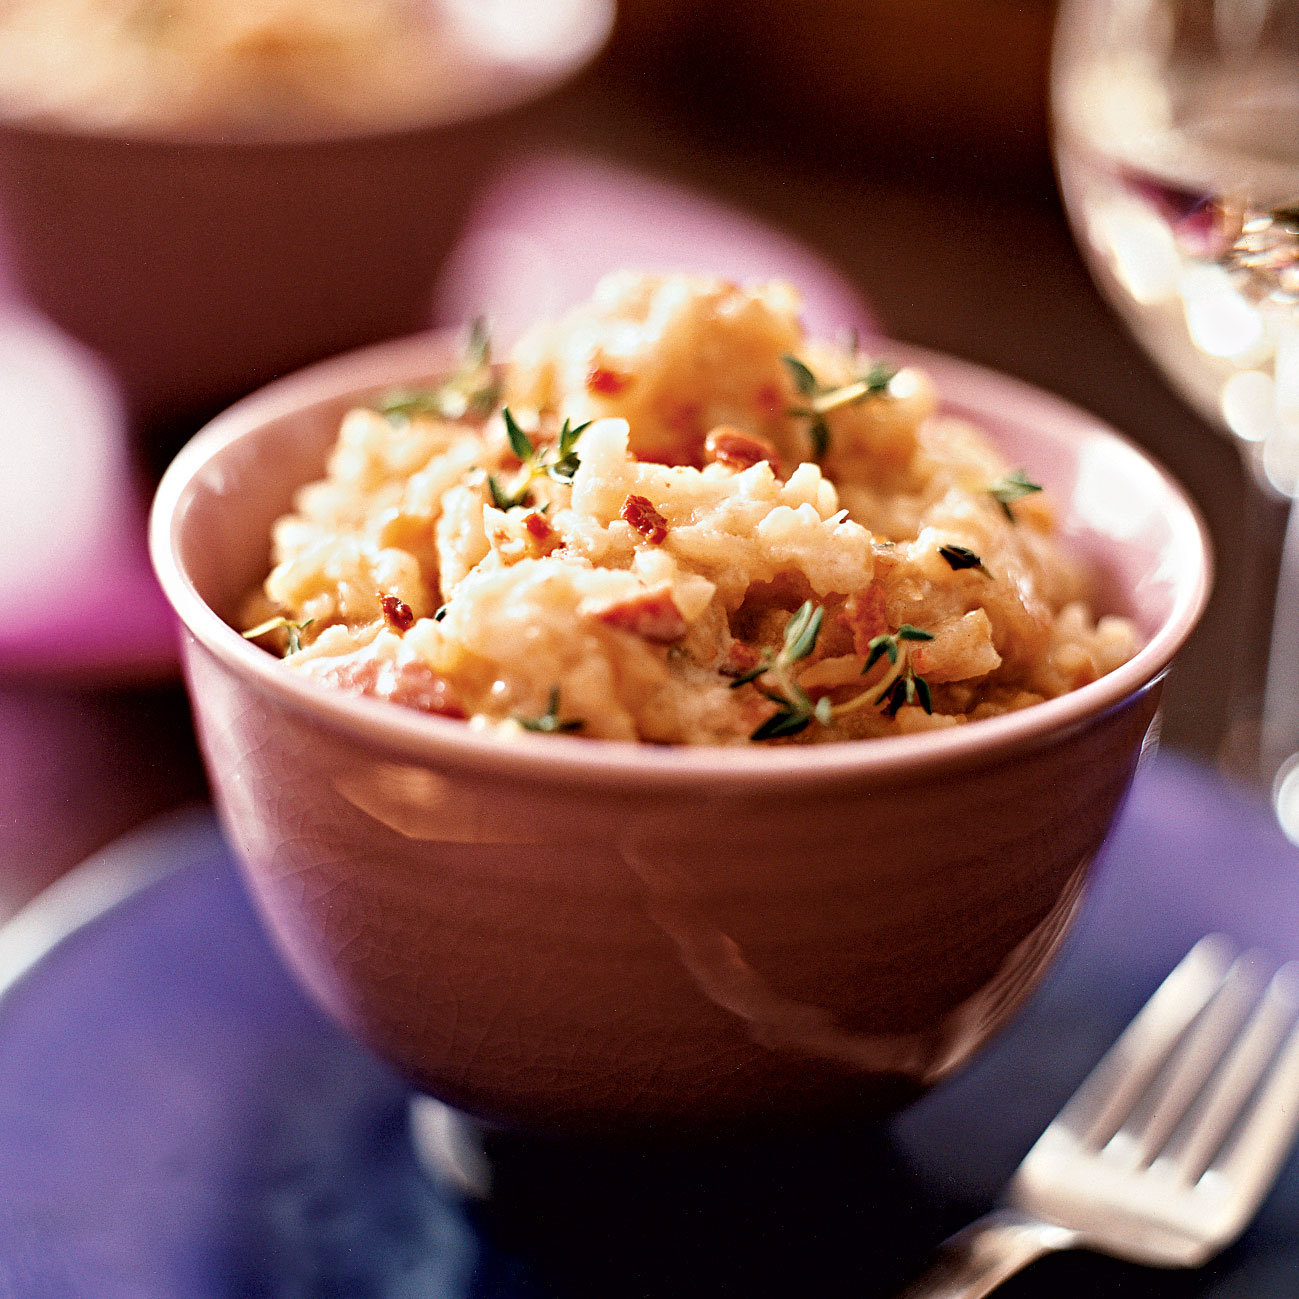 Caramelized-Onion Risotto with Bacon